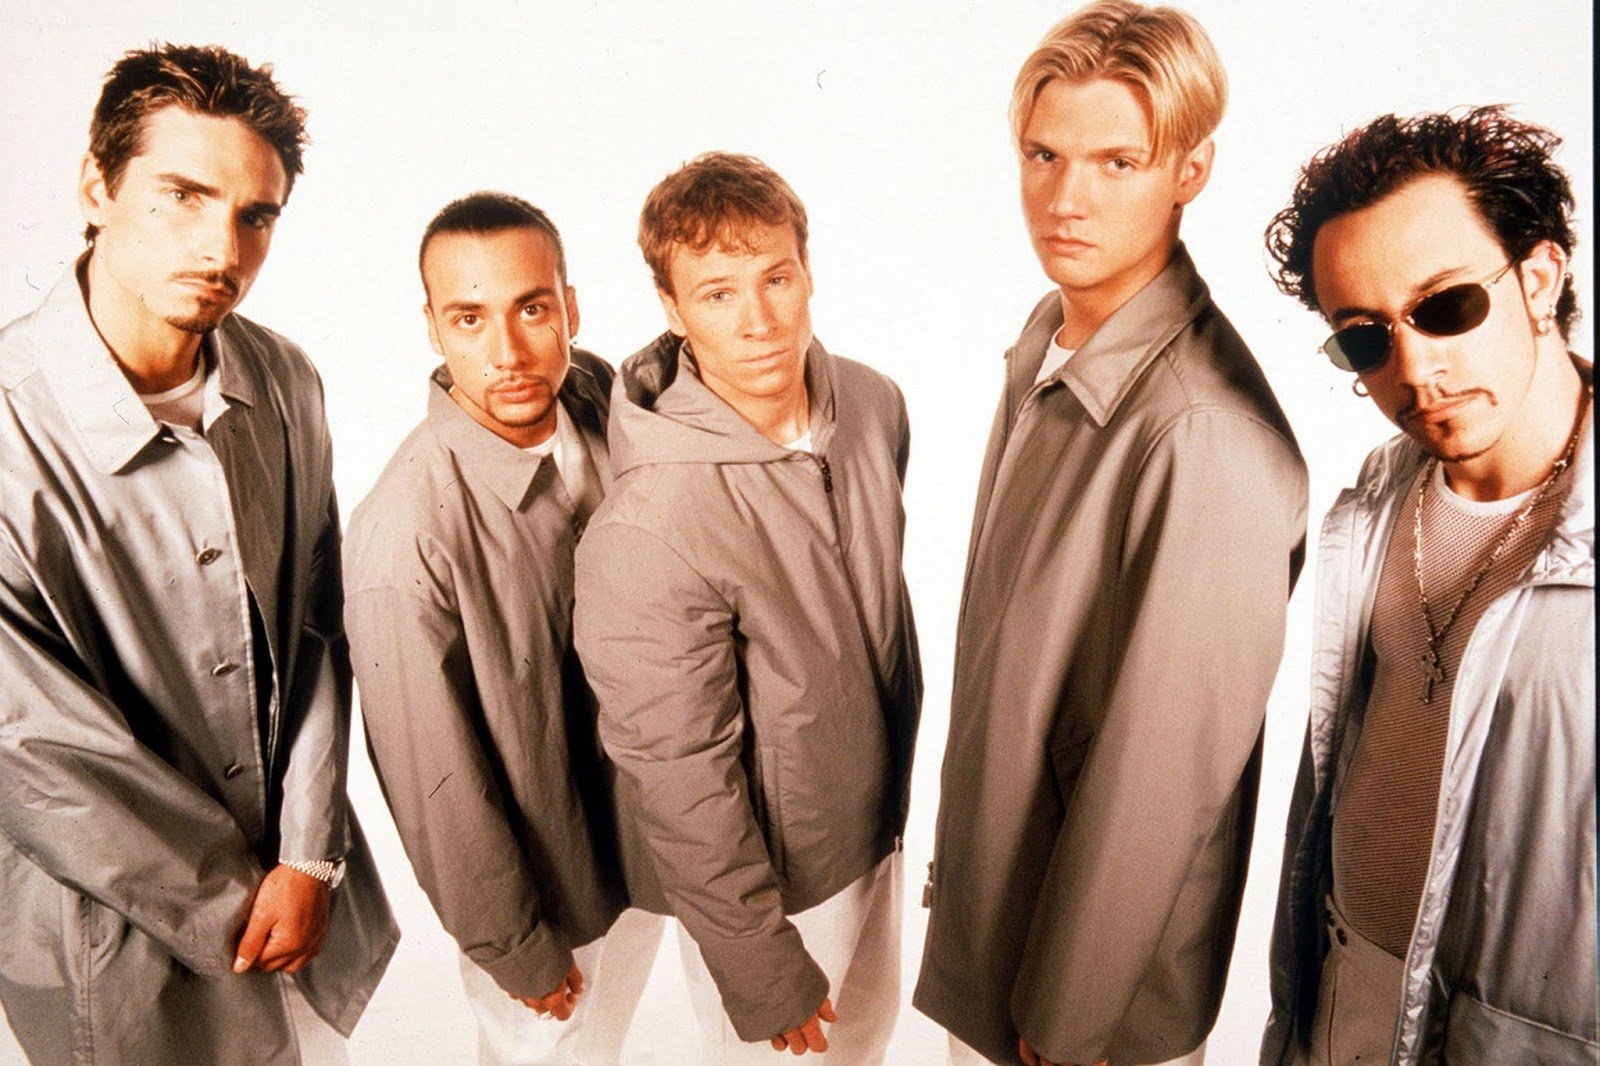 Backstreet Boys - Show 'Em (What You're Made Of) Lyrics